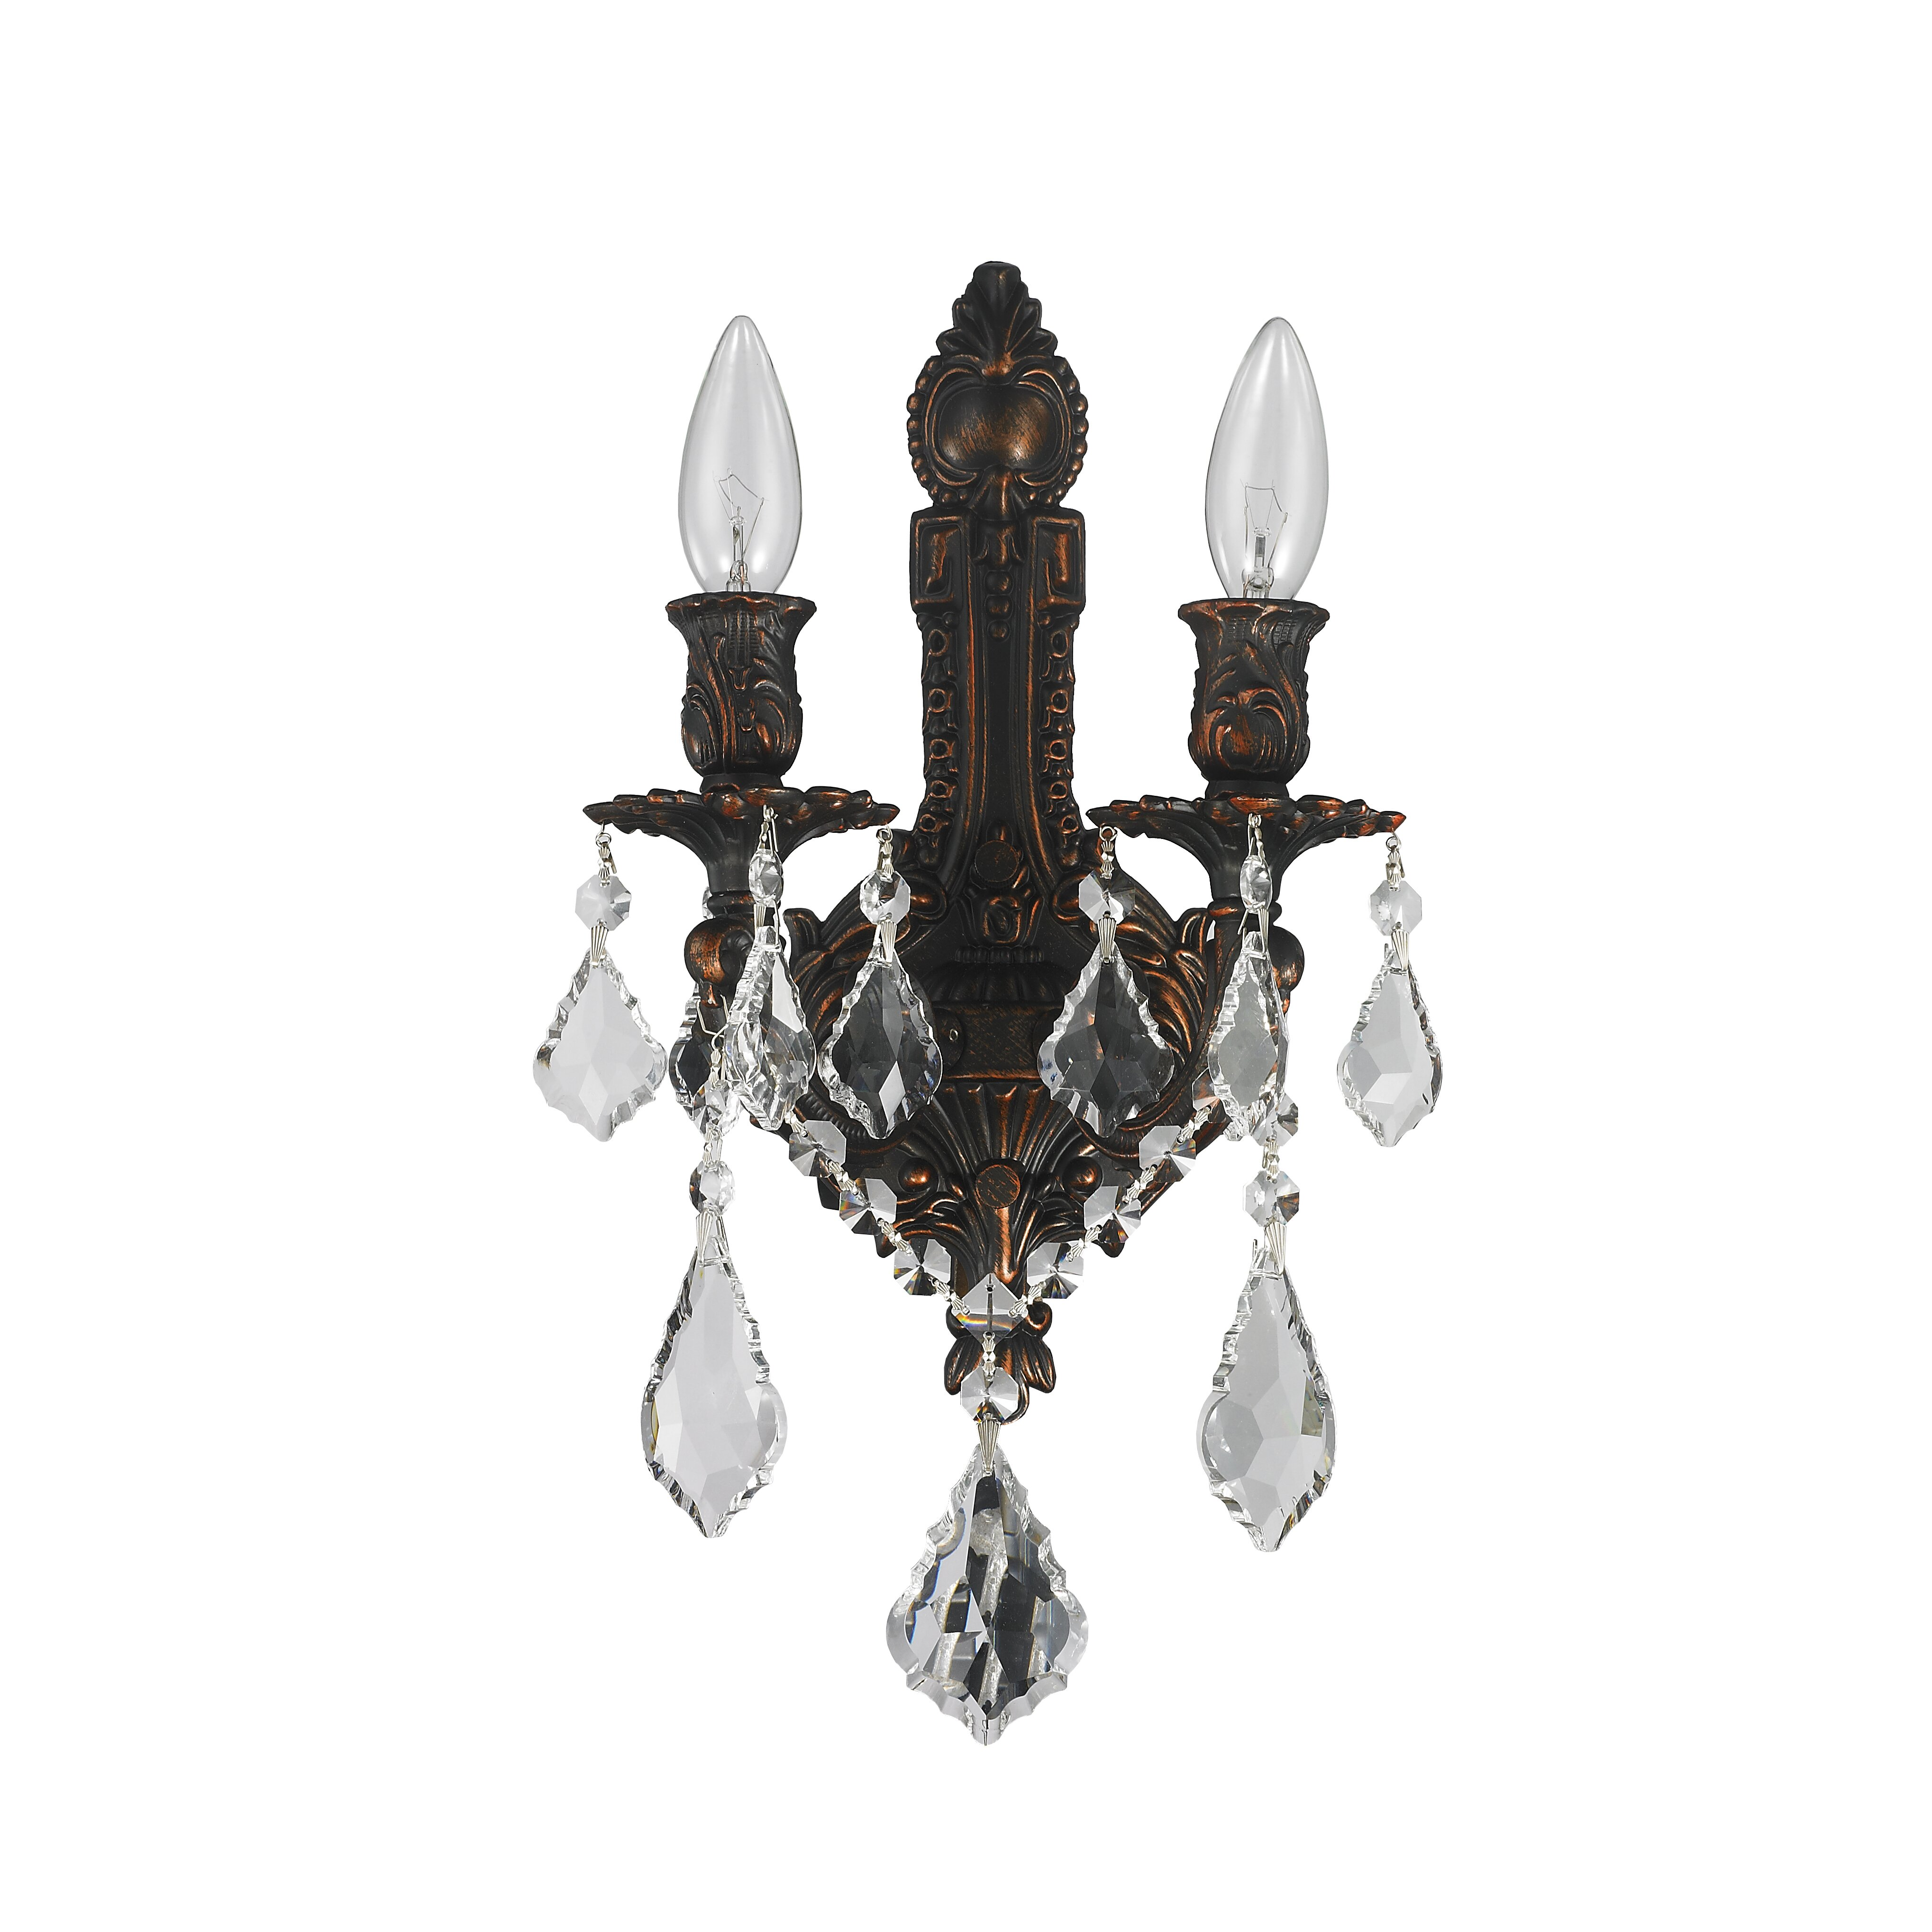 Wall Sconces 2 Lights : Worldwide Lighting Versailles 2 Light Wall Sconce & Reviews Wayfair